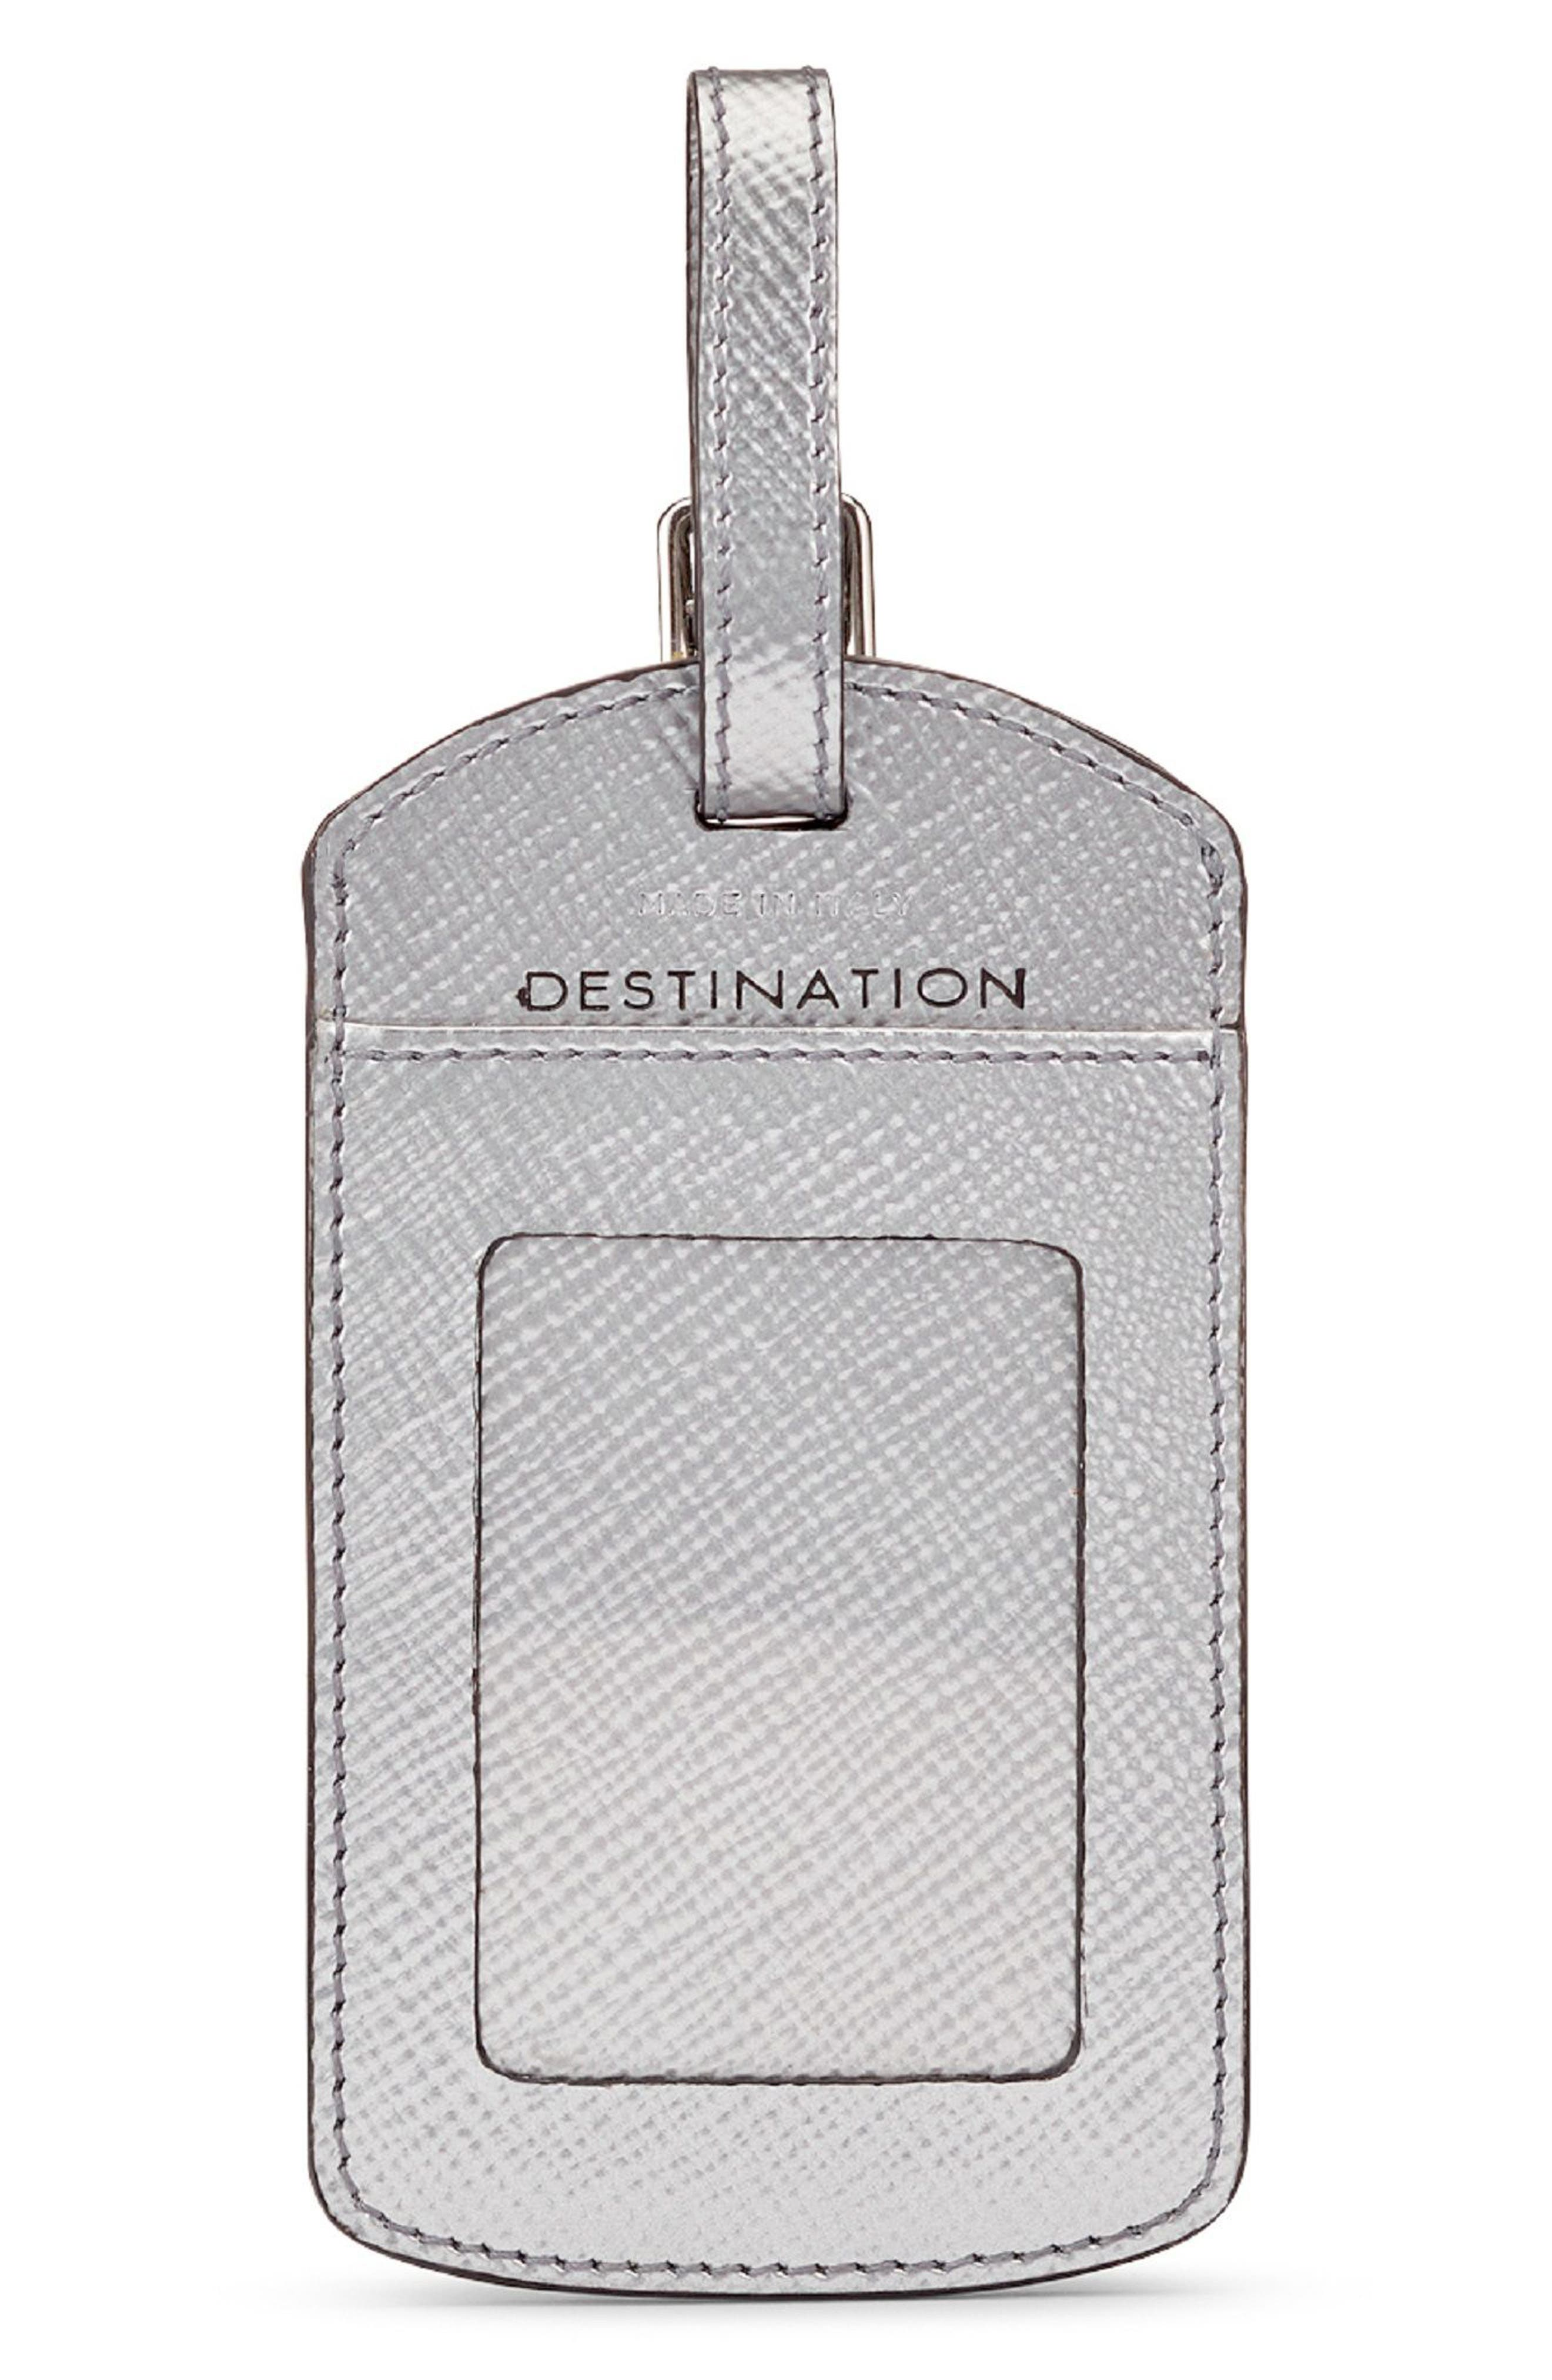 Home/Destination Calfskin Leather Luggage Tag,                             Alternate thumbnail 2, color,                             040